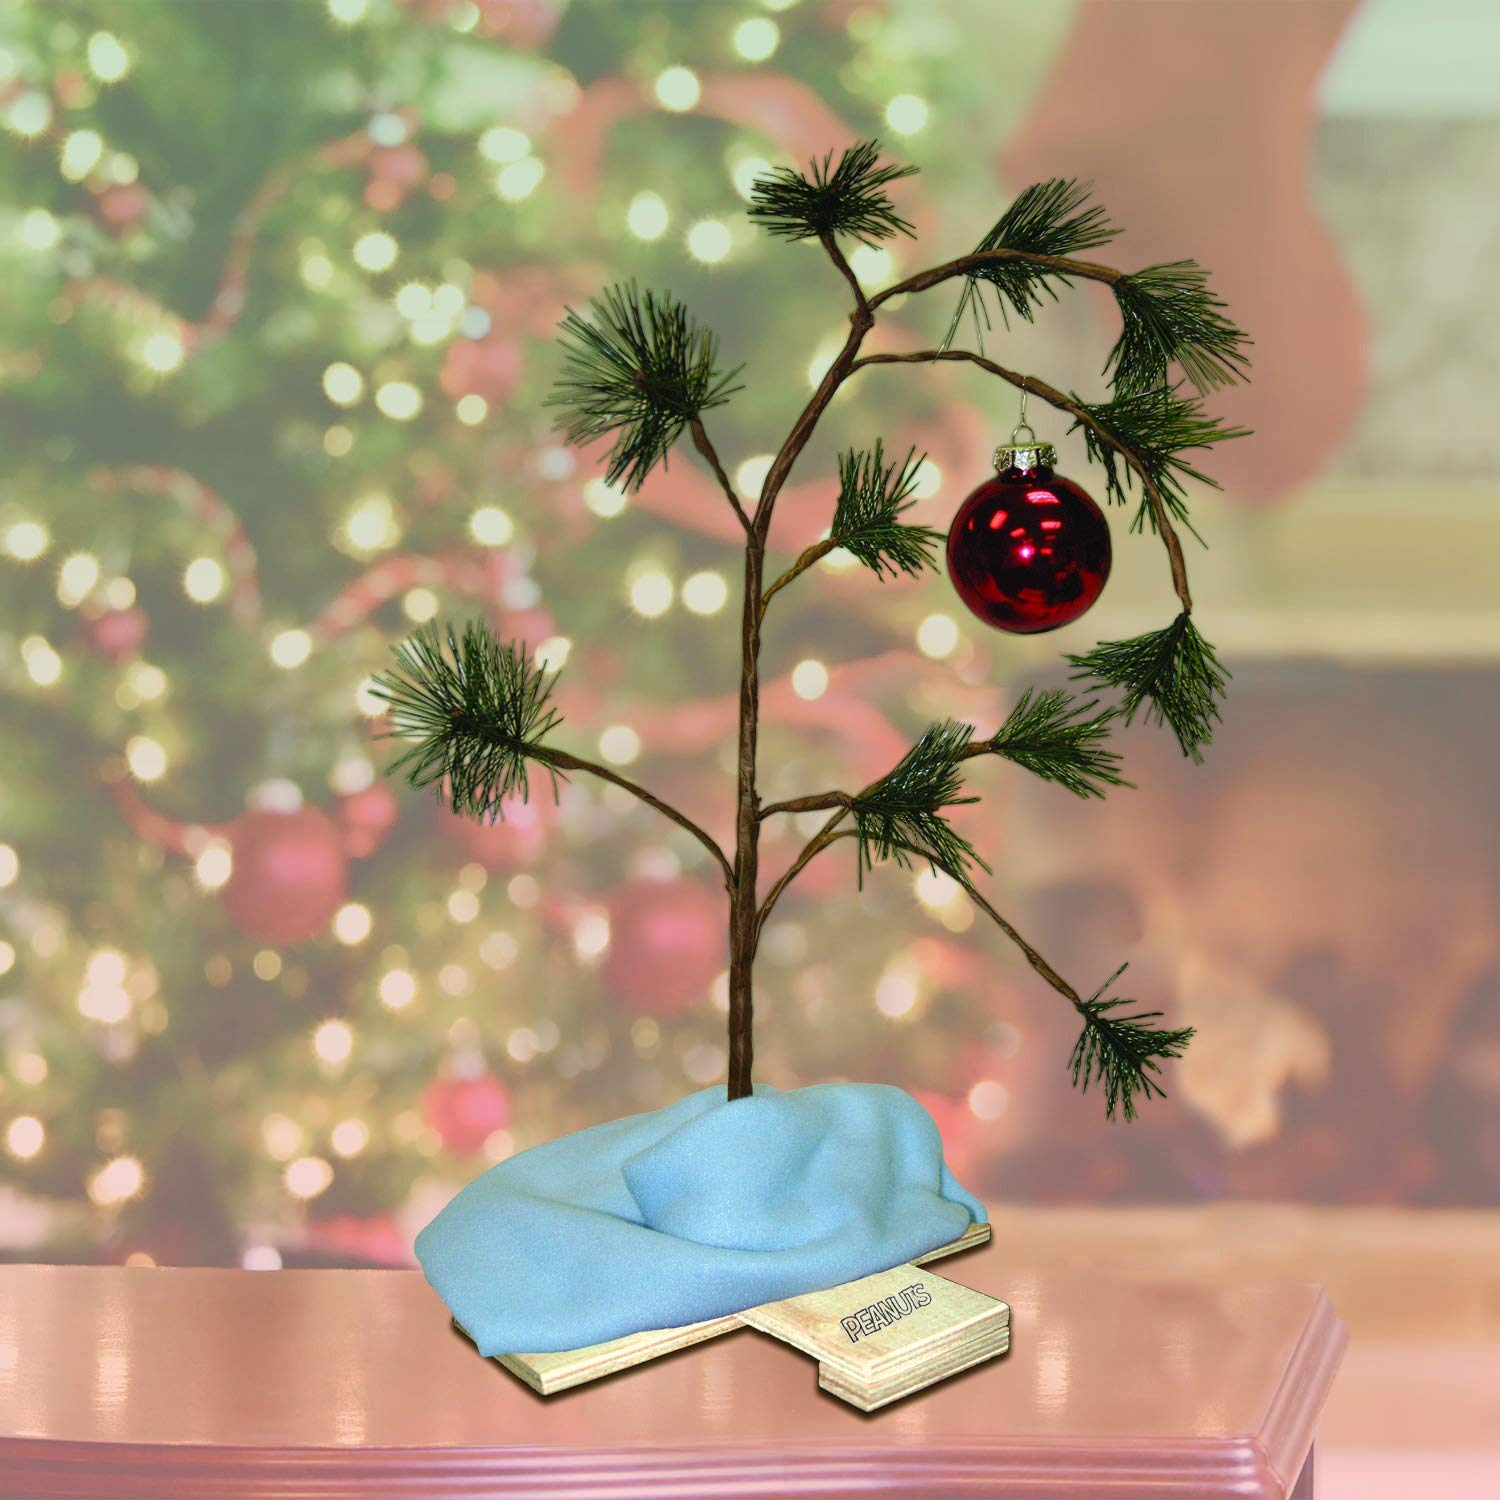 Display Tree - Charlie Brown Christmas Tree